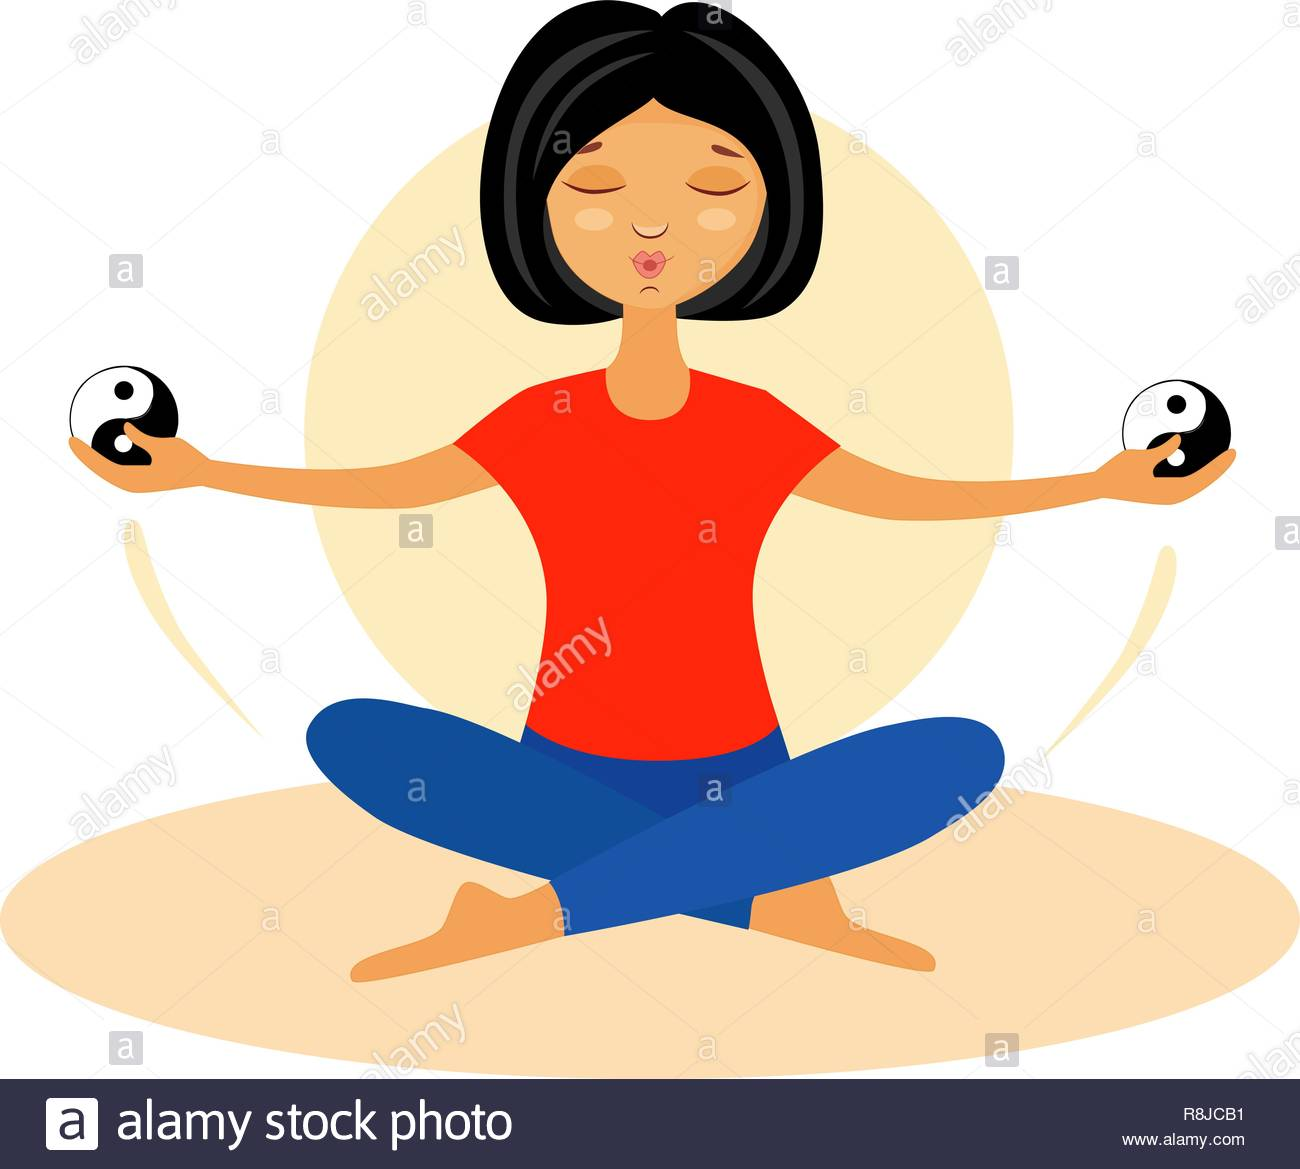 Qigong Exercises Stock Photos & Qigong Exercises Stock